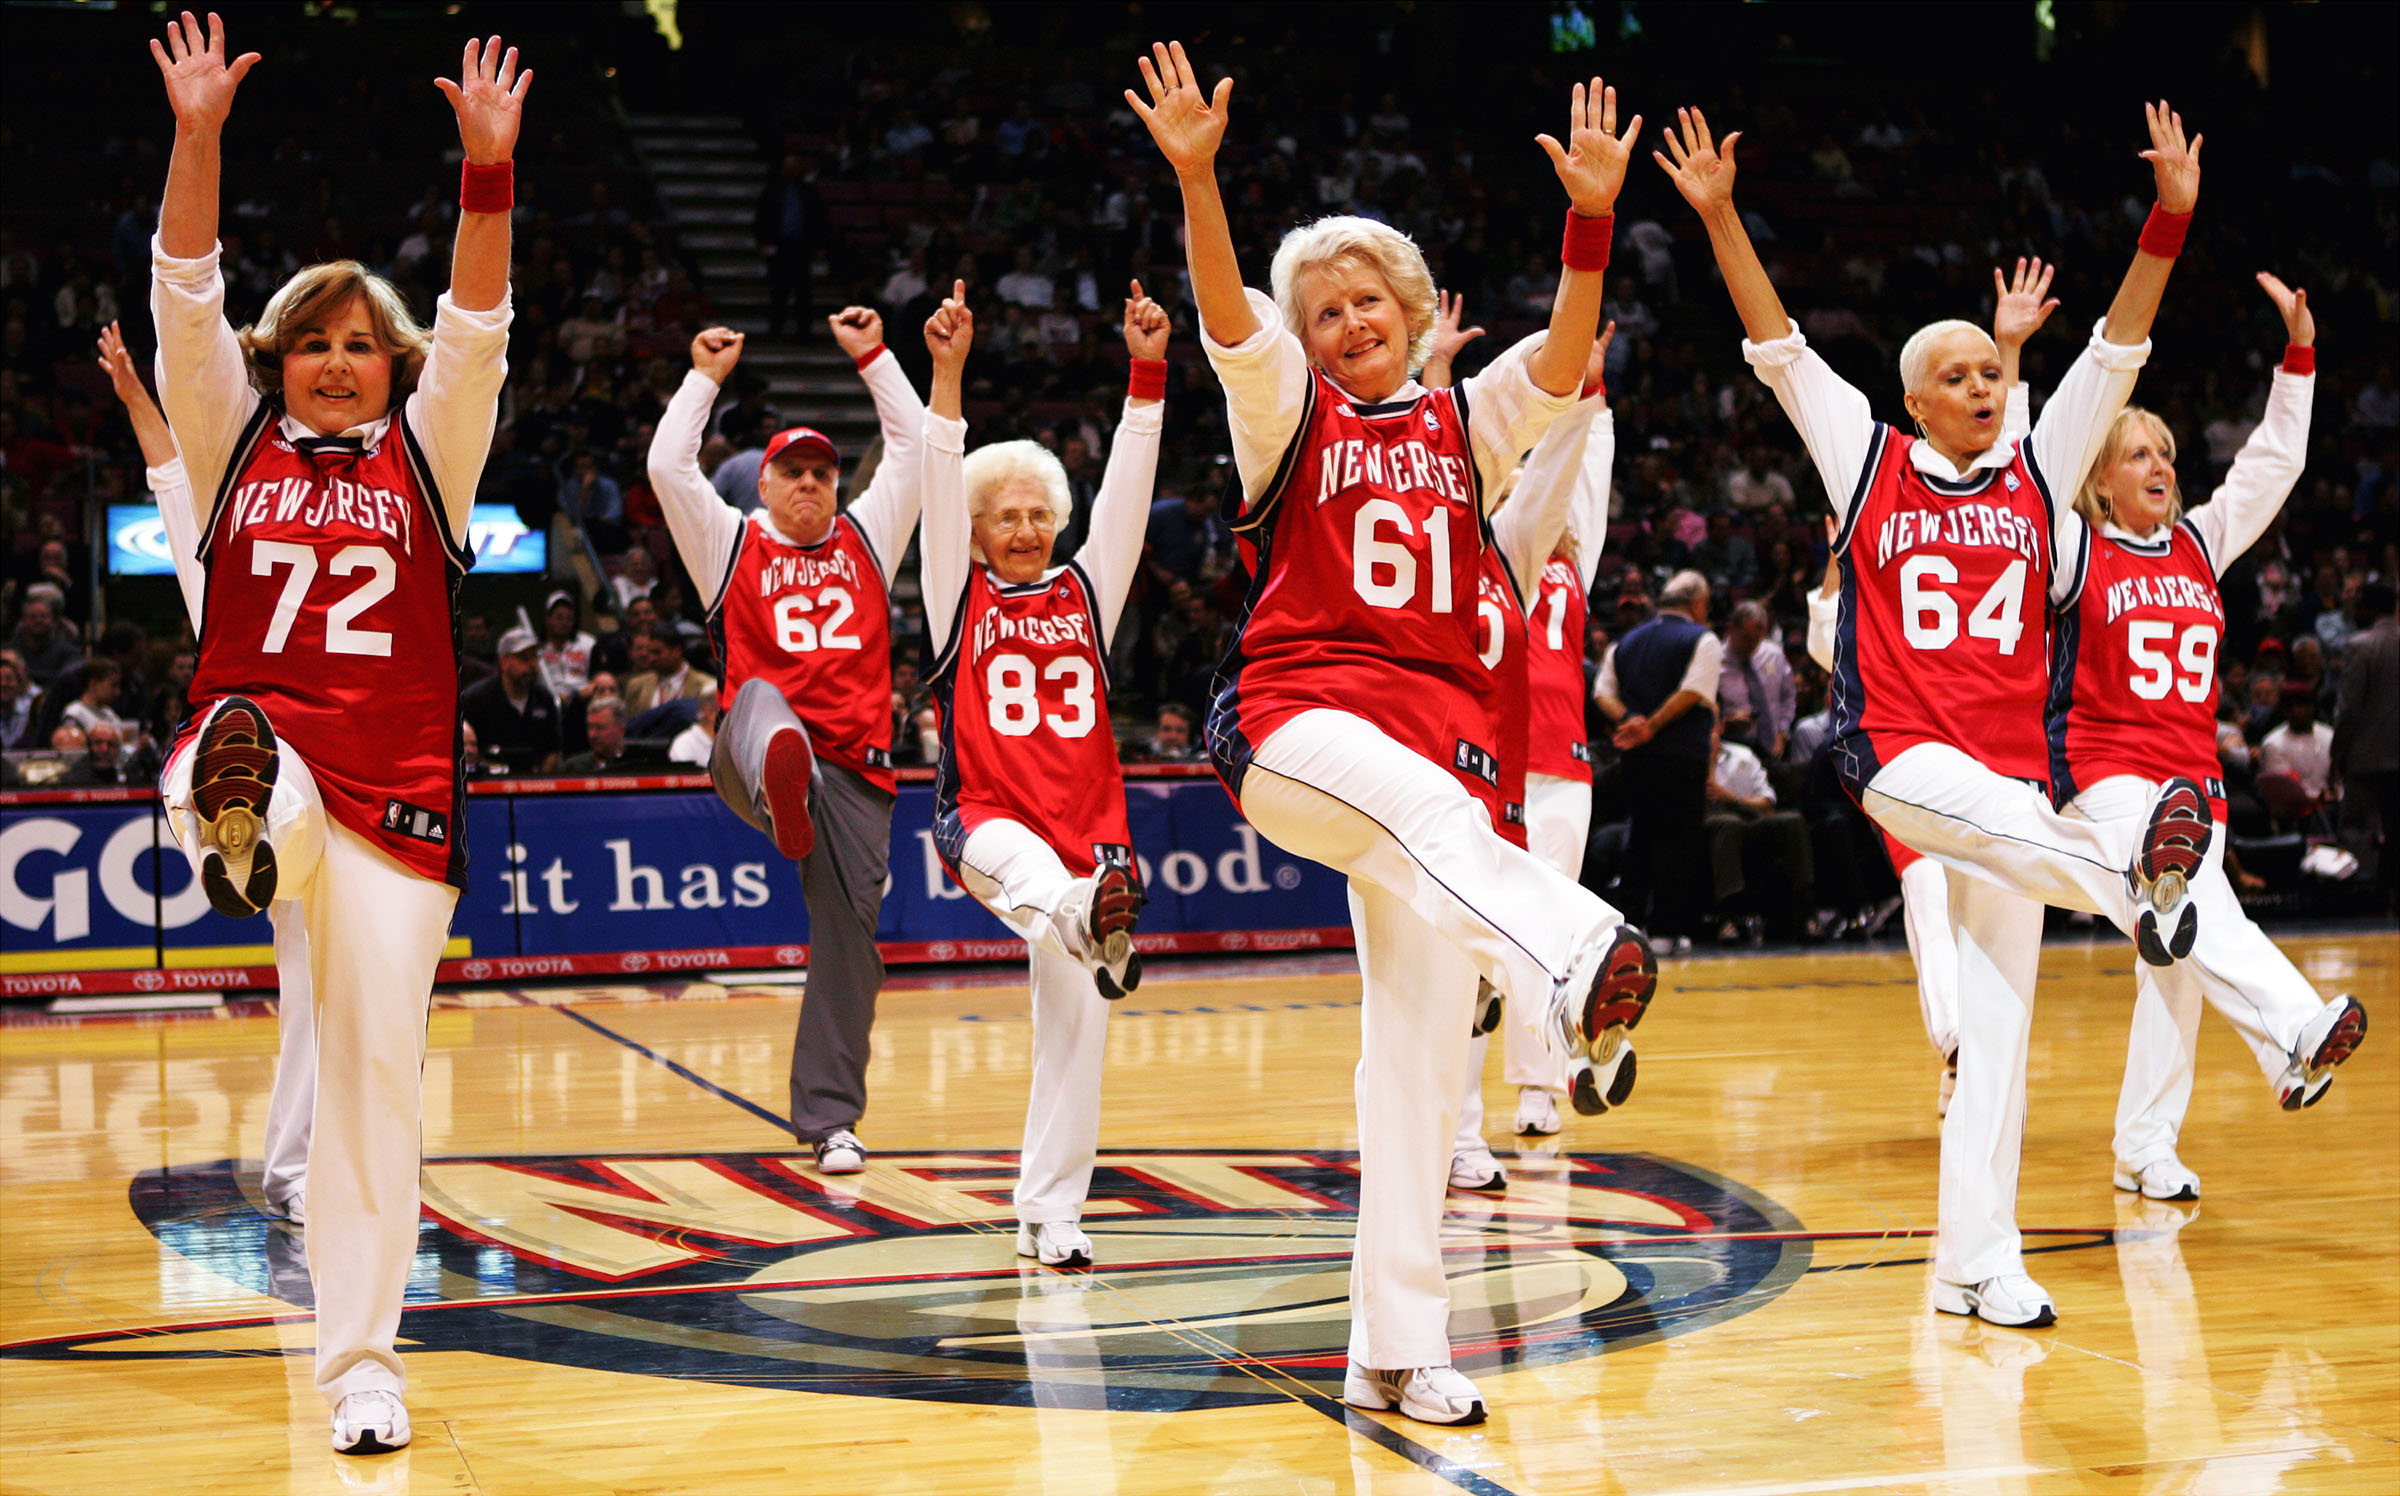 The New Jersey Nets Senior Dancers make their debut at the Continental Airlines Arena during a home game against the Detroit Pistons in 2007.